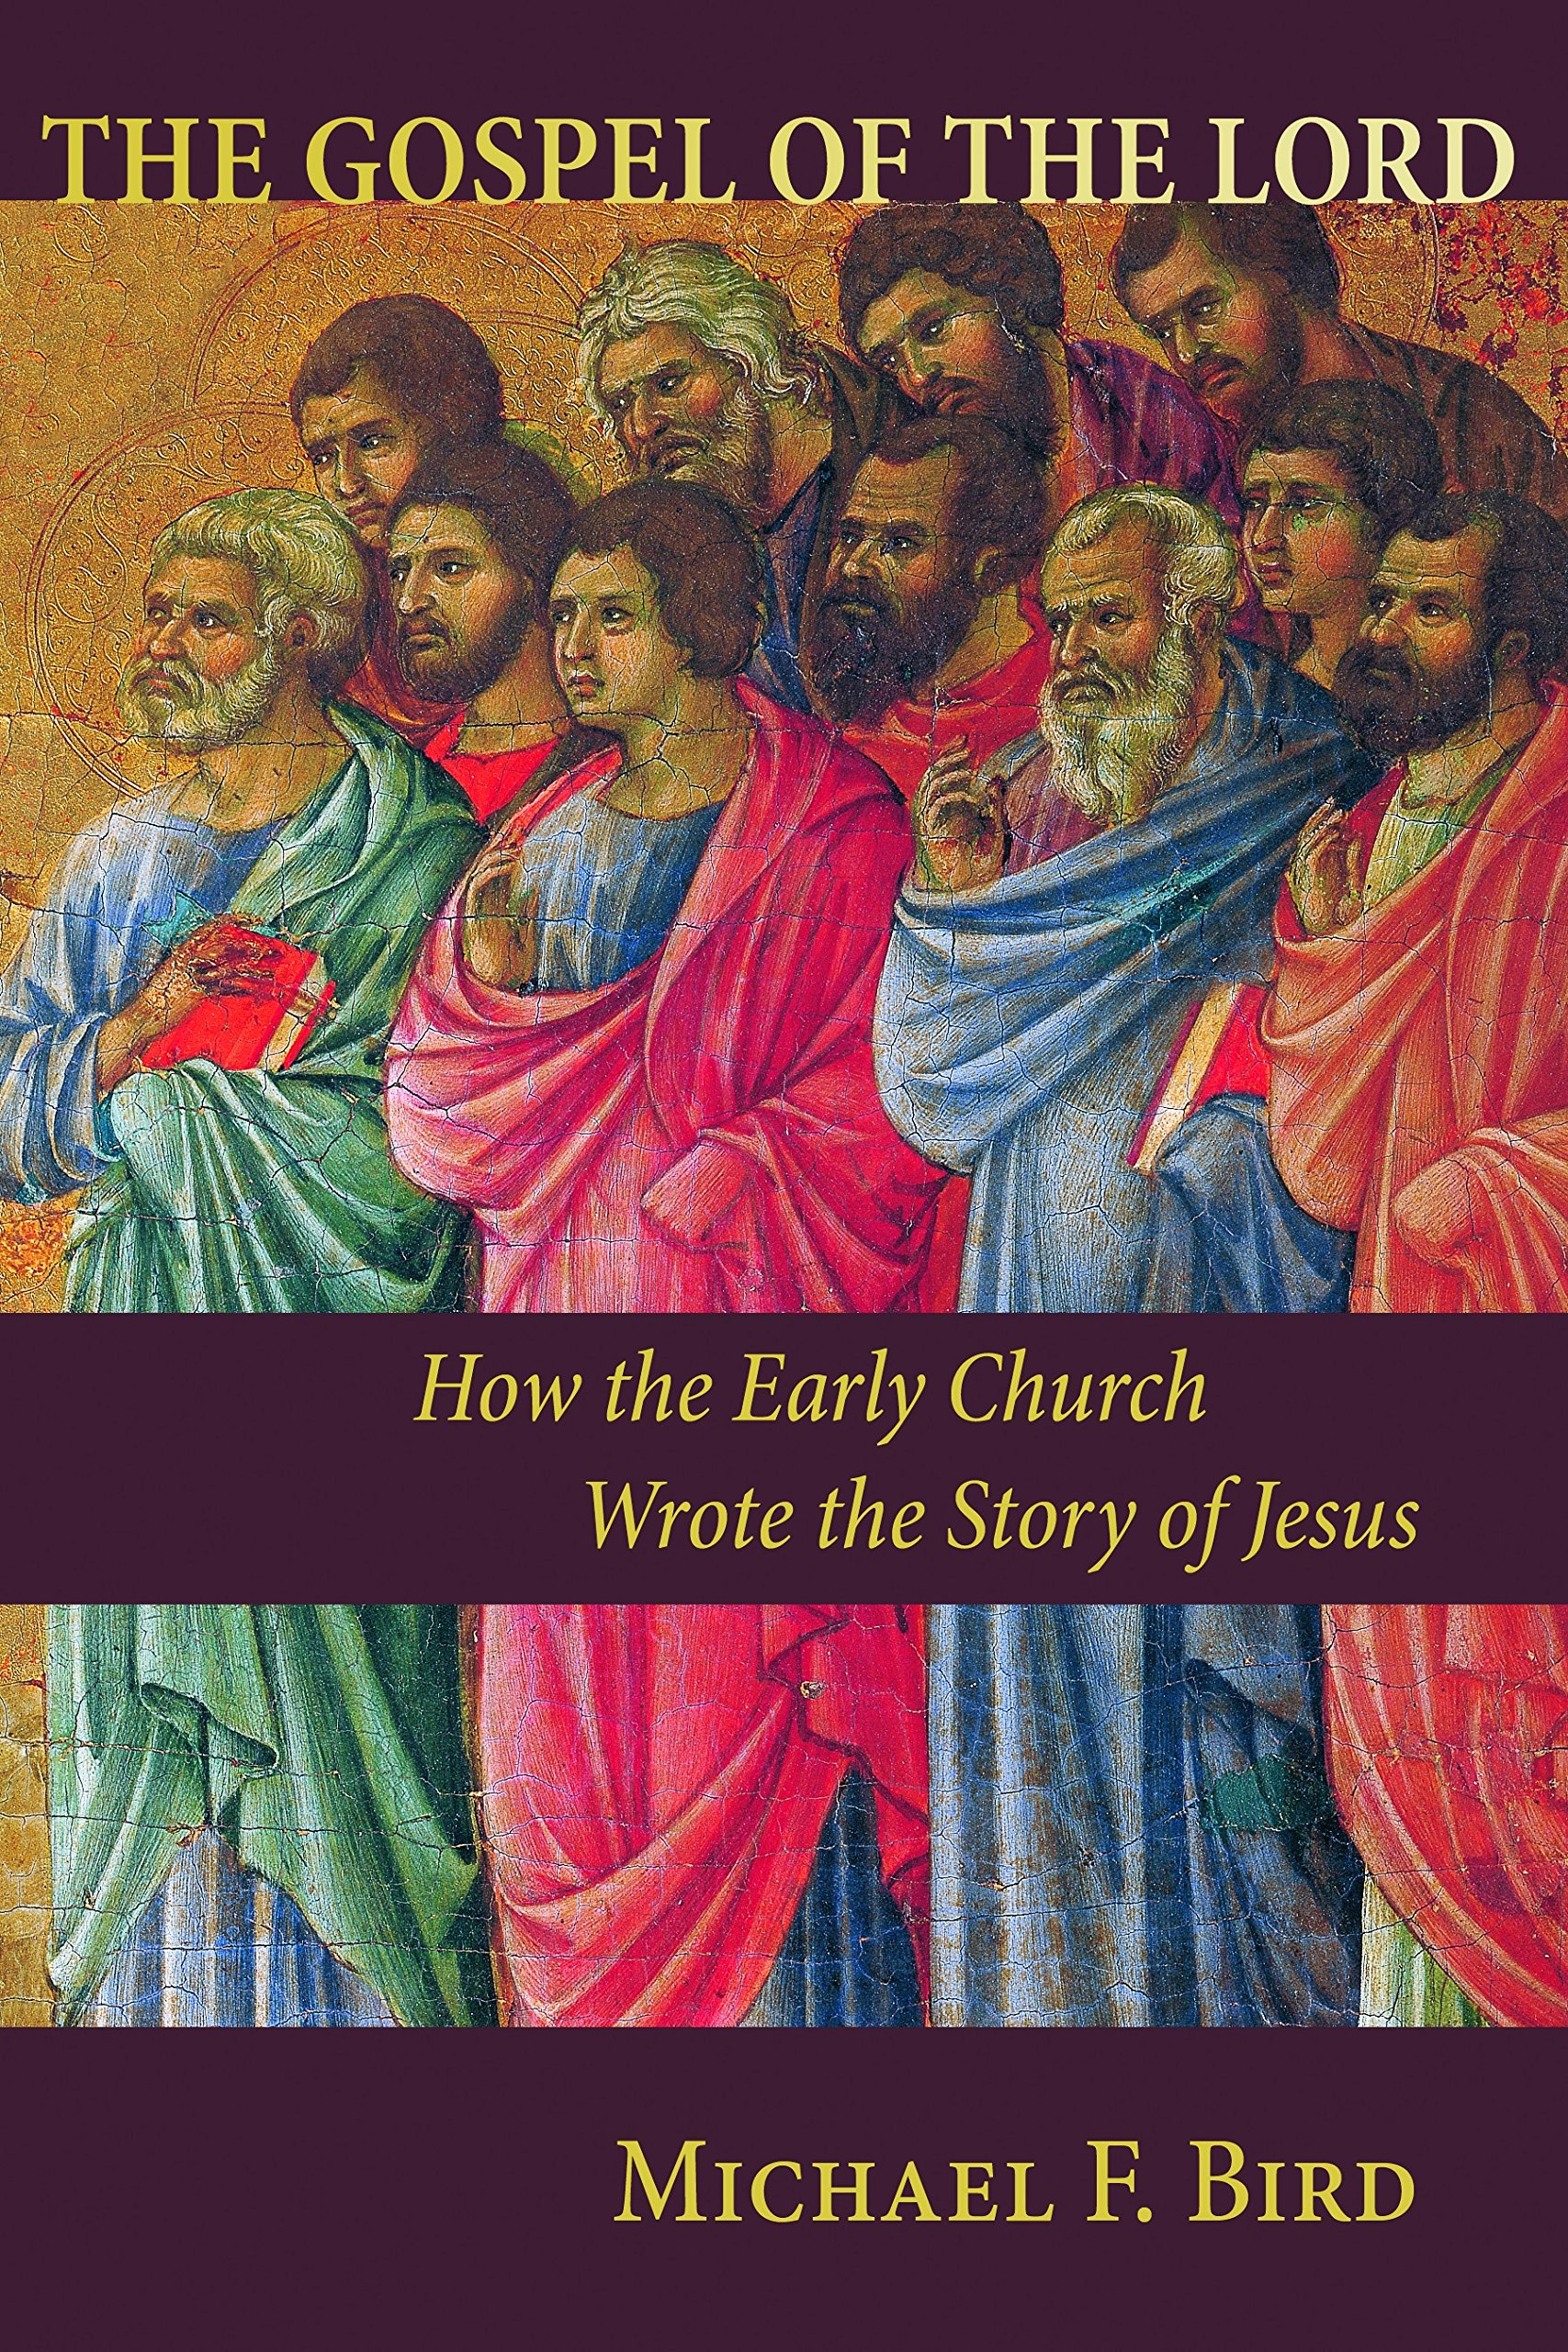 The Gospel of the Lord How the Early Church Wrote the Story of